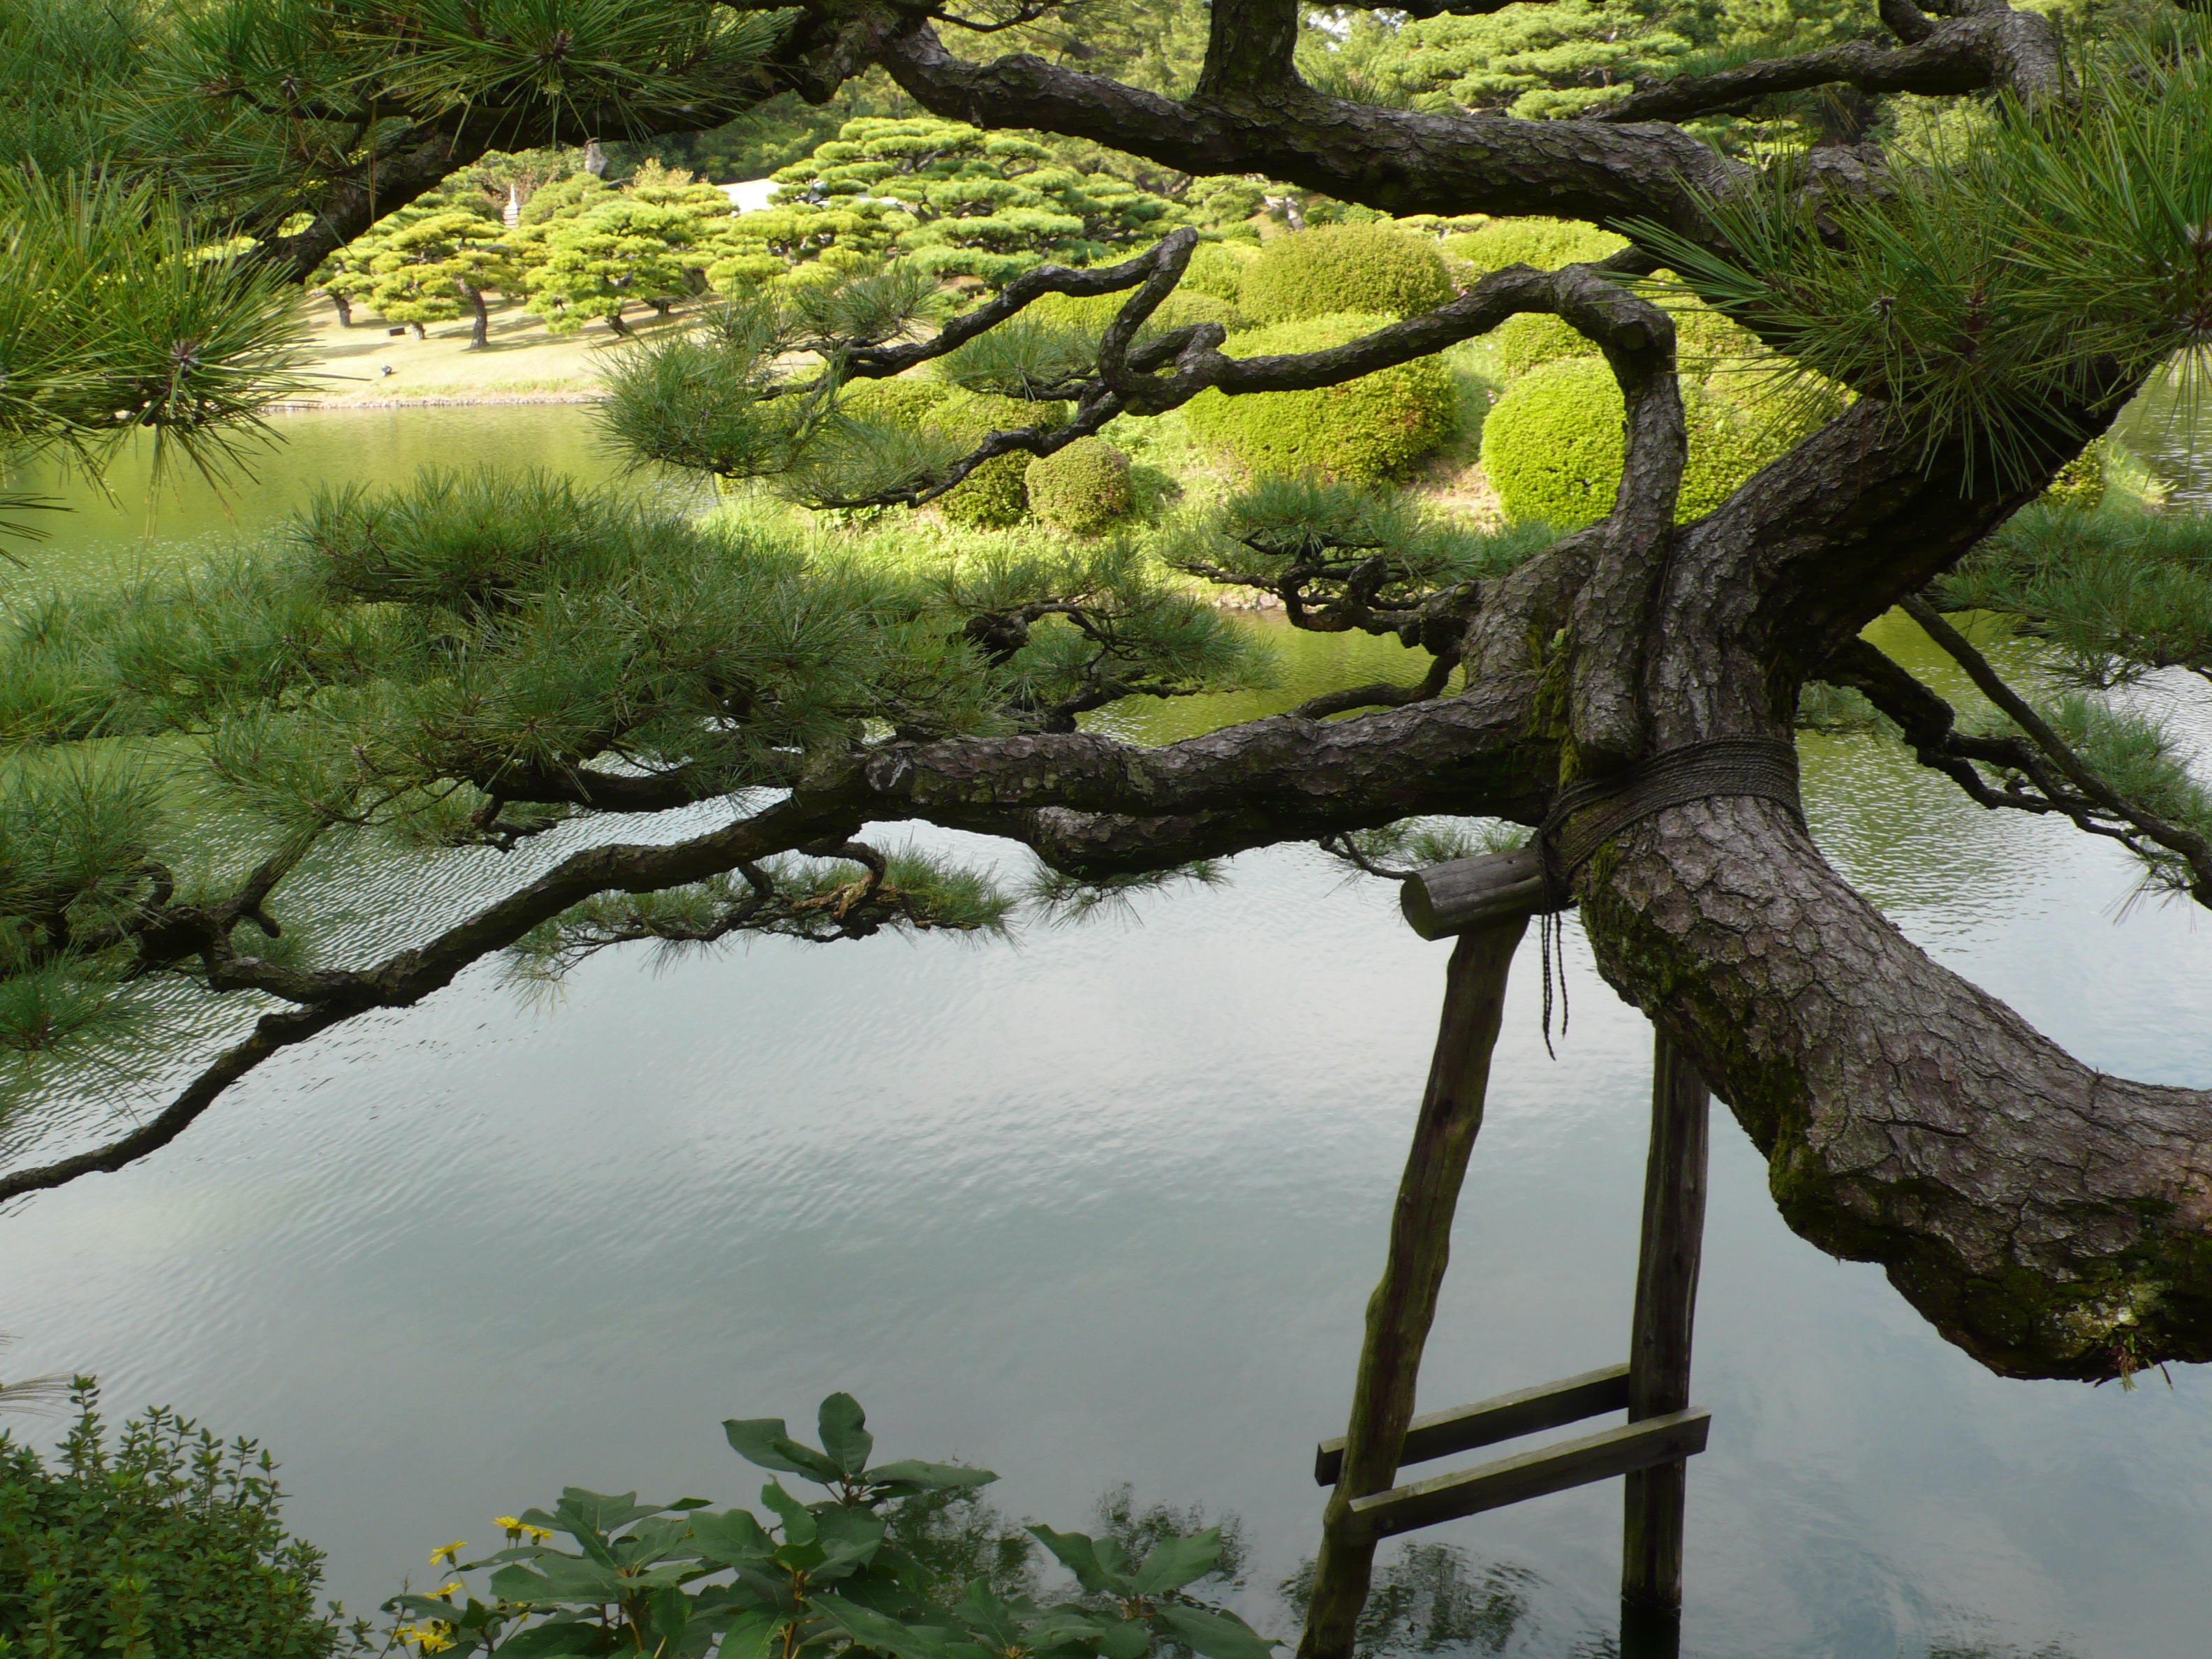 Land of tenderly tended gardens.  As soon as you walk in a Japanese garden, you lose yourself to the paths, the carefully placed and pruned trees, the ponds and reflections. The scent of earth and pine envelope you and let you know you are imperfectly perfect just as you are.